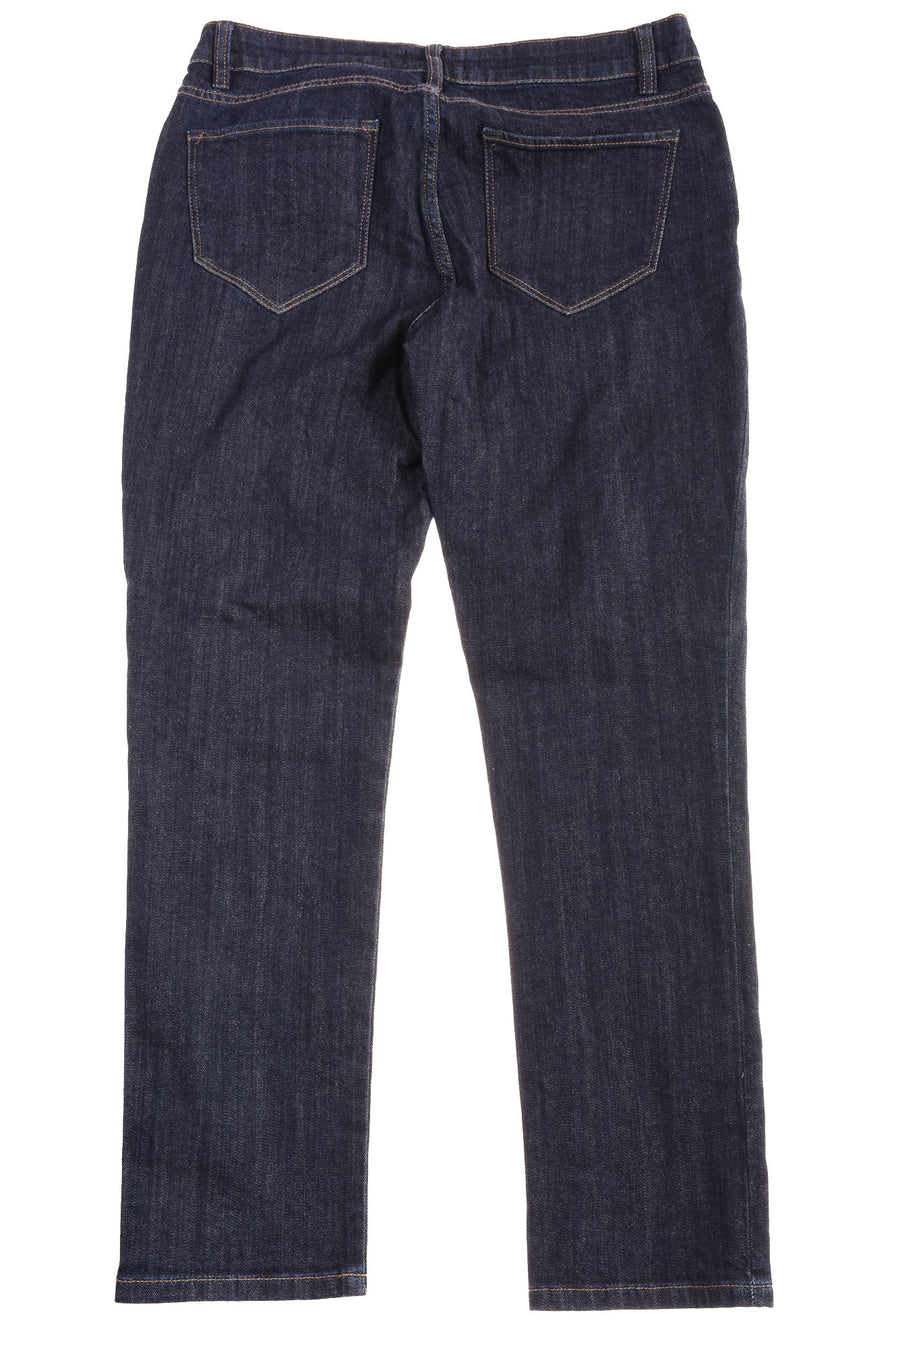 USED Liz Claiborne Women's Jeans 6 Blue